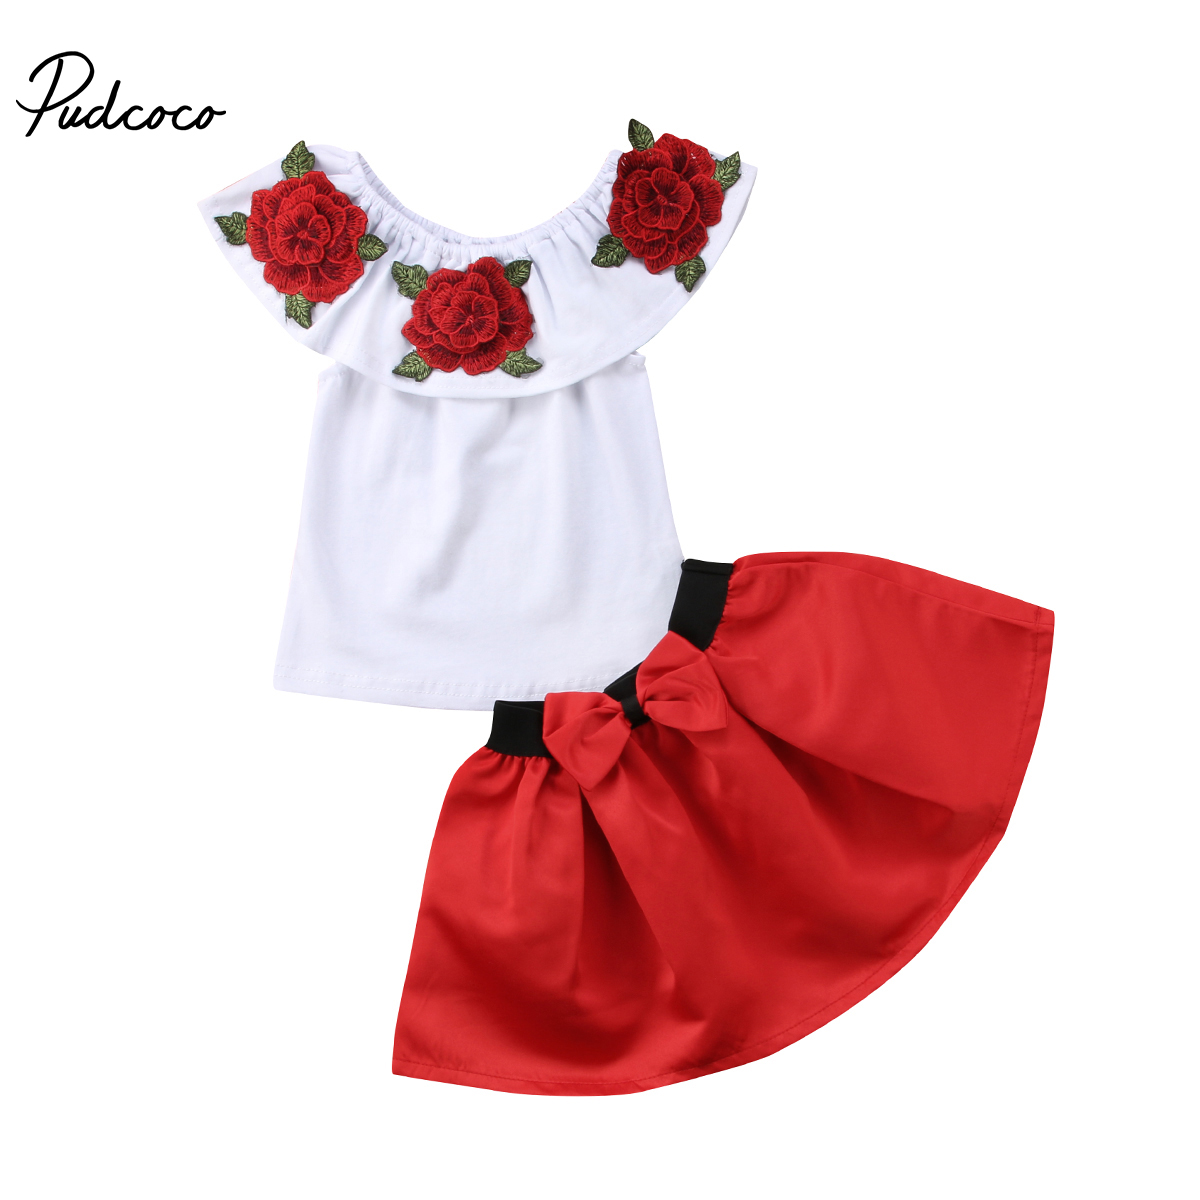 Summer Girls Clothes New Casual Children Clothing Sets Flower Shirts Red Skirt Kids Baby Girl Outfits  2 3 4 5 6 Years